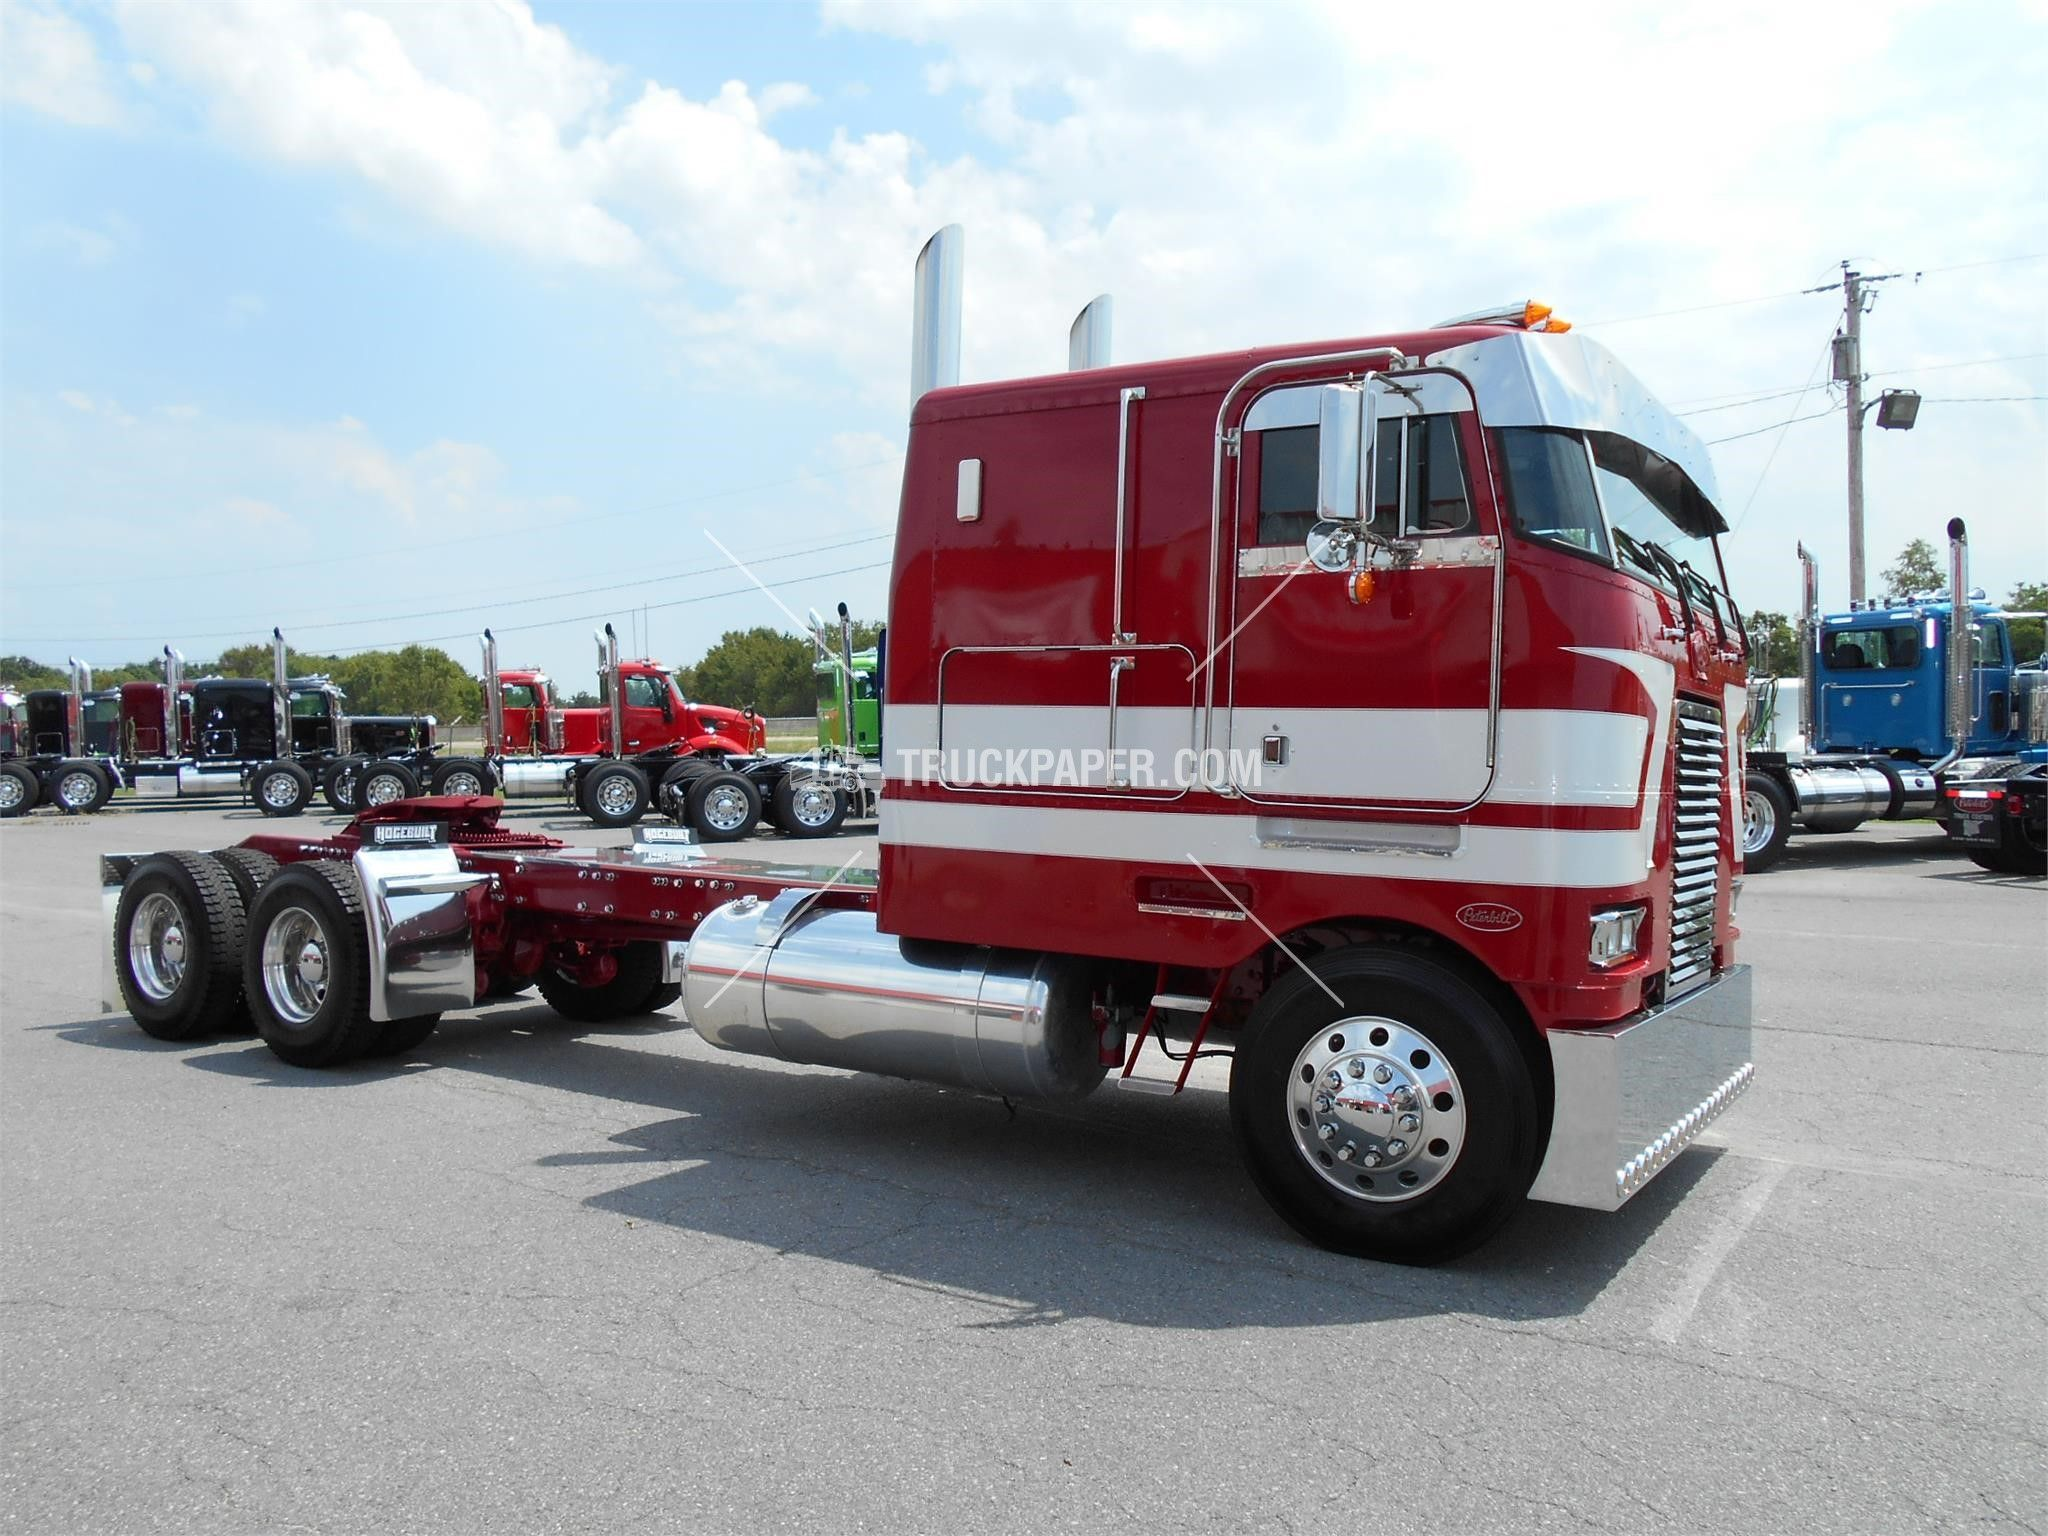 1987 PETERBILT 362 For Sale At Hundreds of